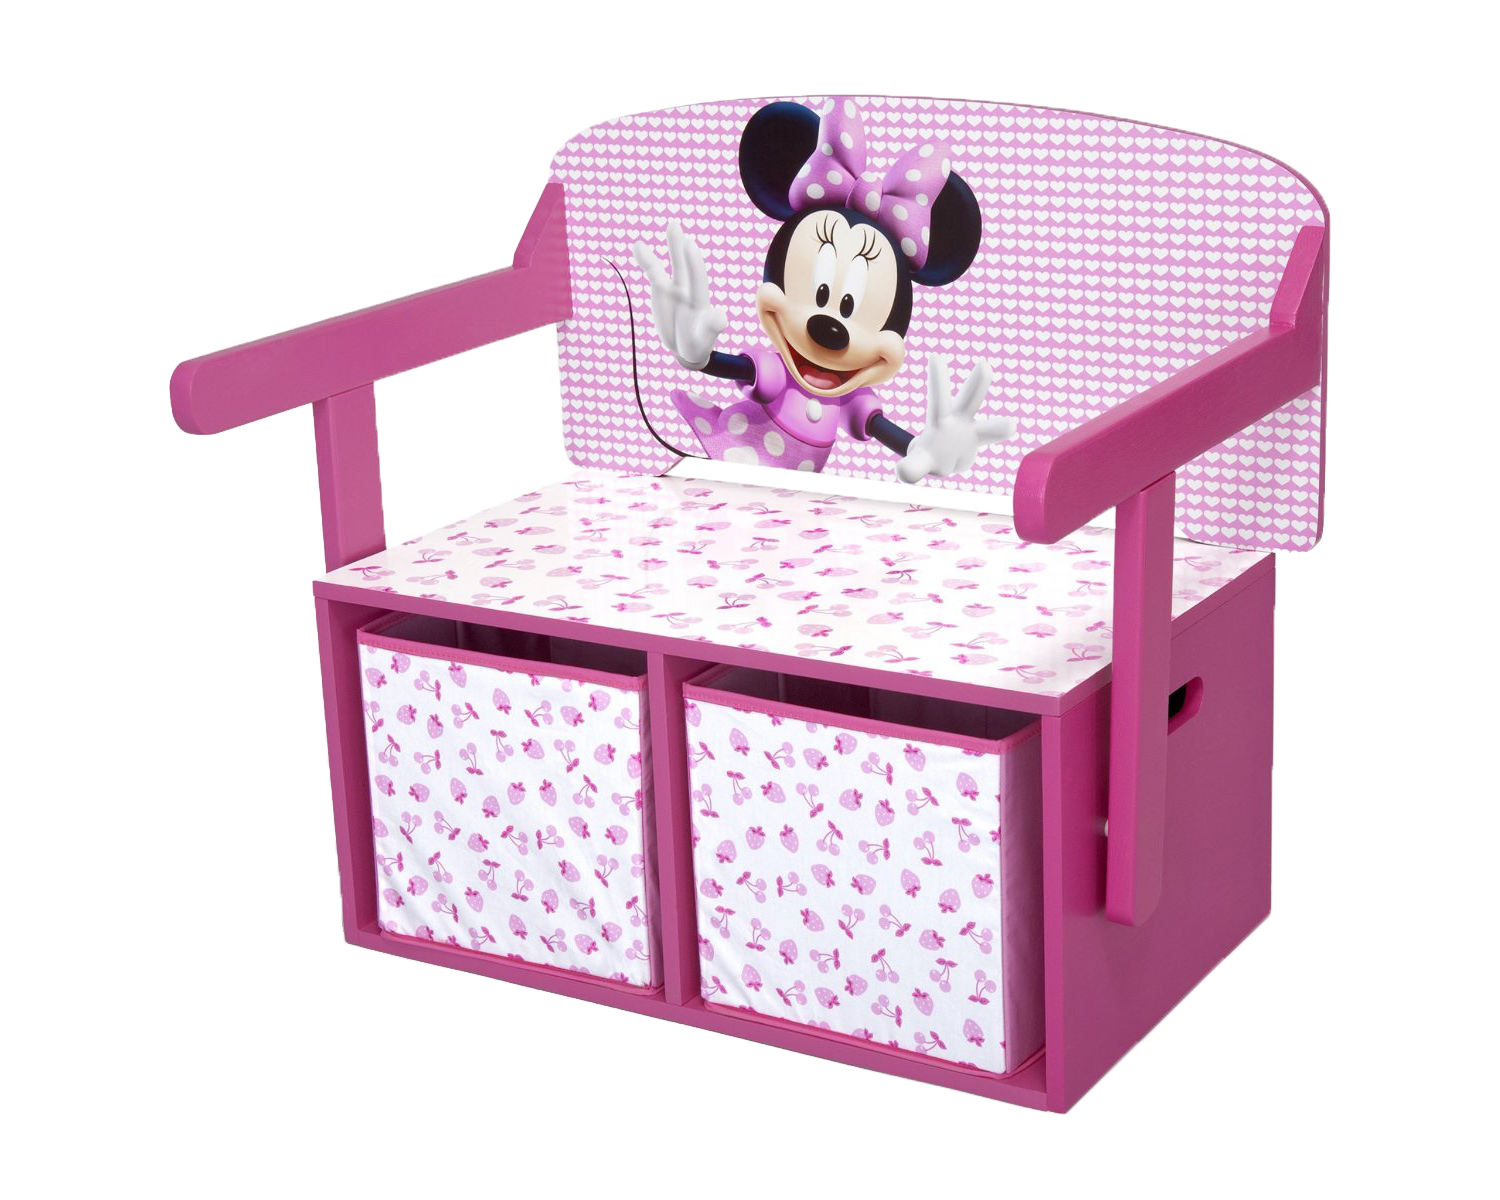 Kids Bedroom Furniture Kids Wooden Toys Online: Minnie Mouse Storage Box Desk Wooden Toy Chest Girls Kids